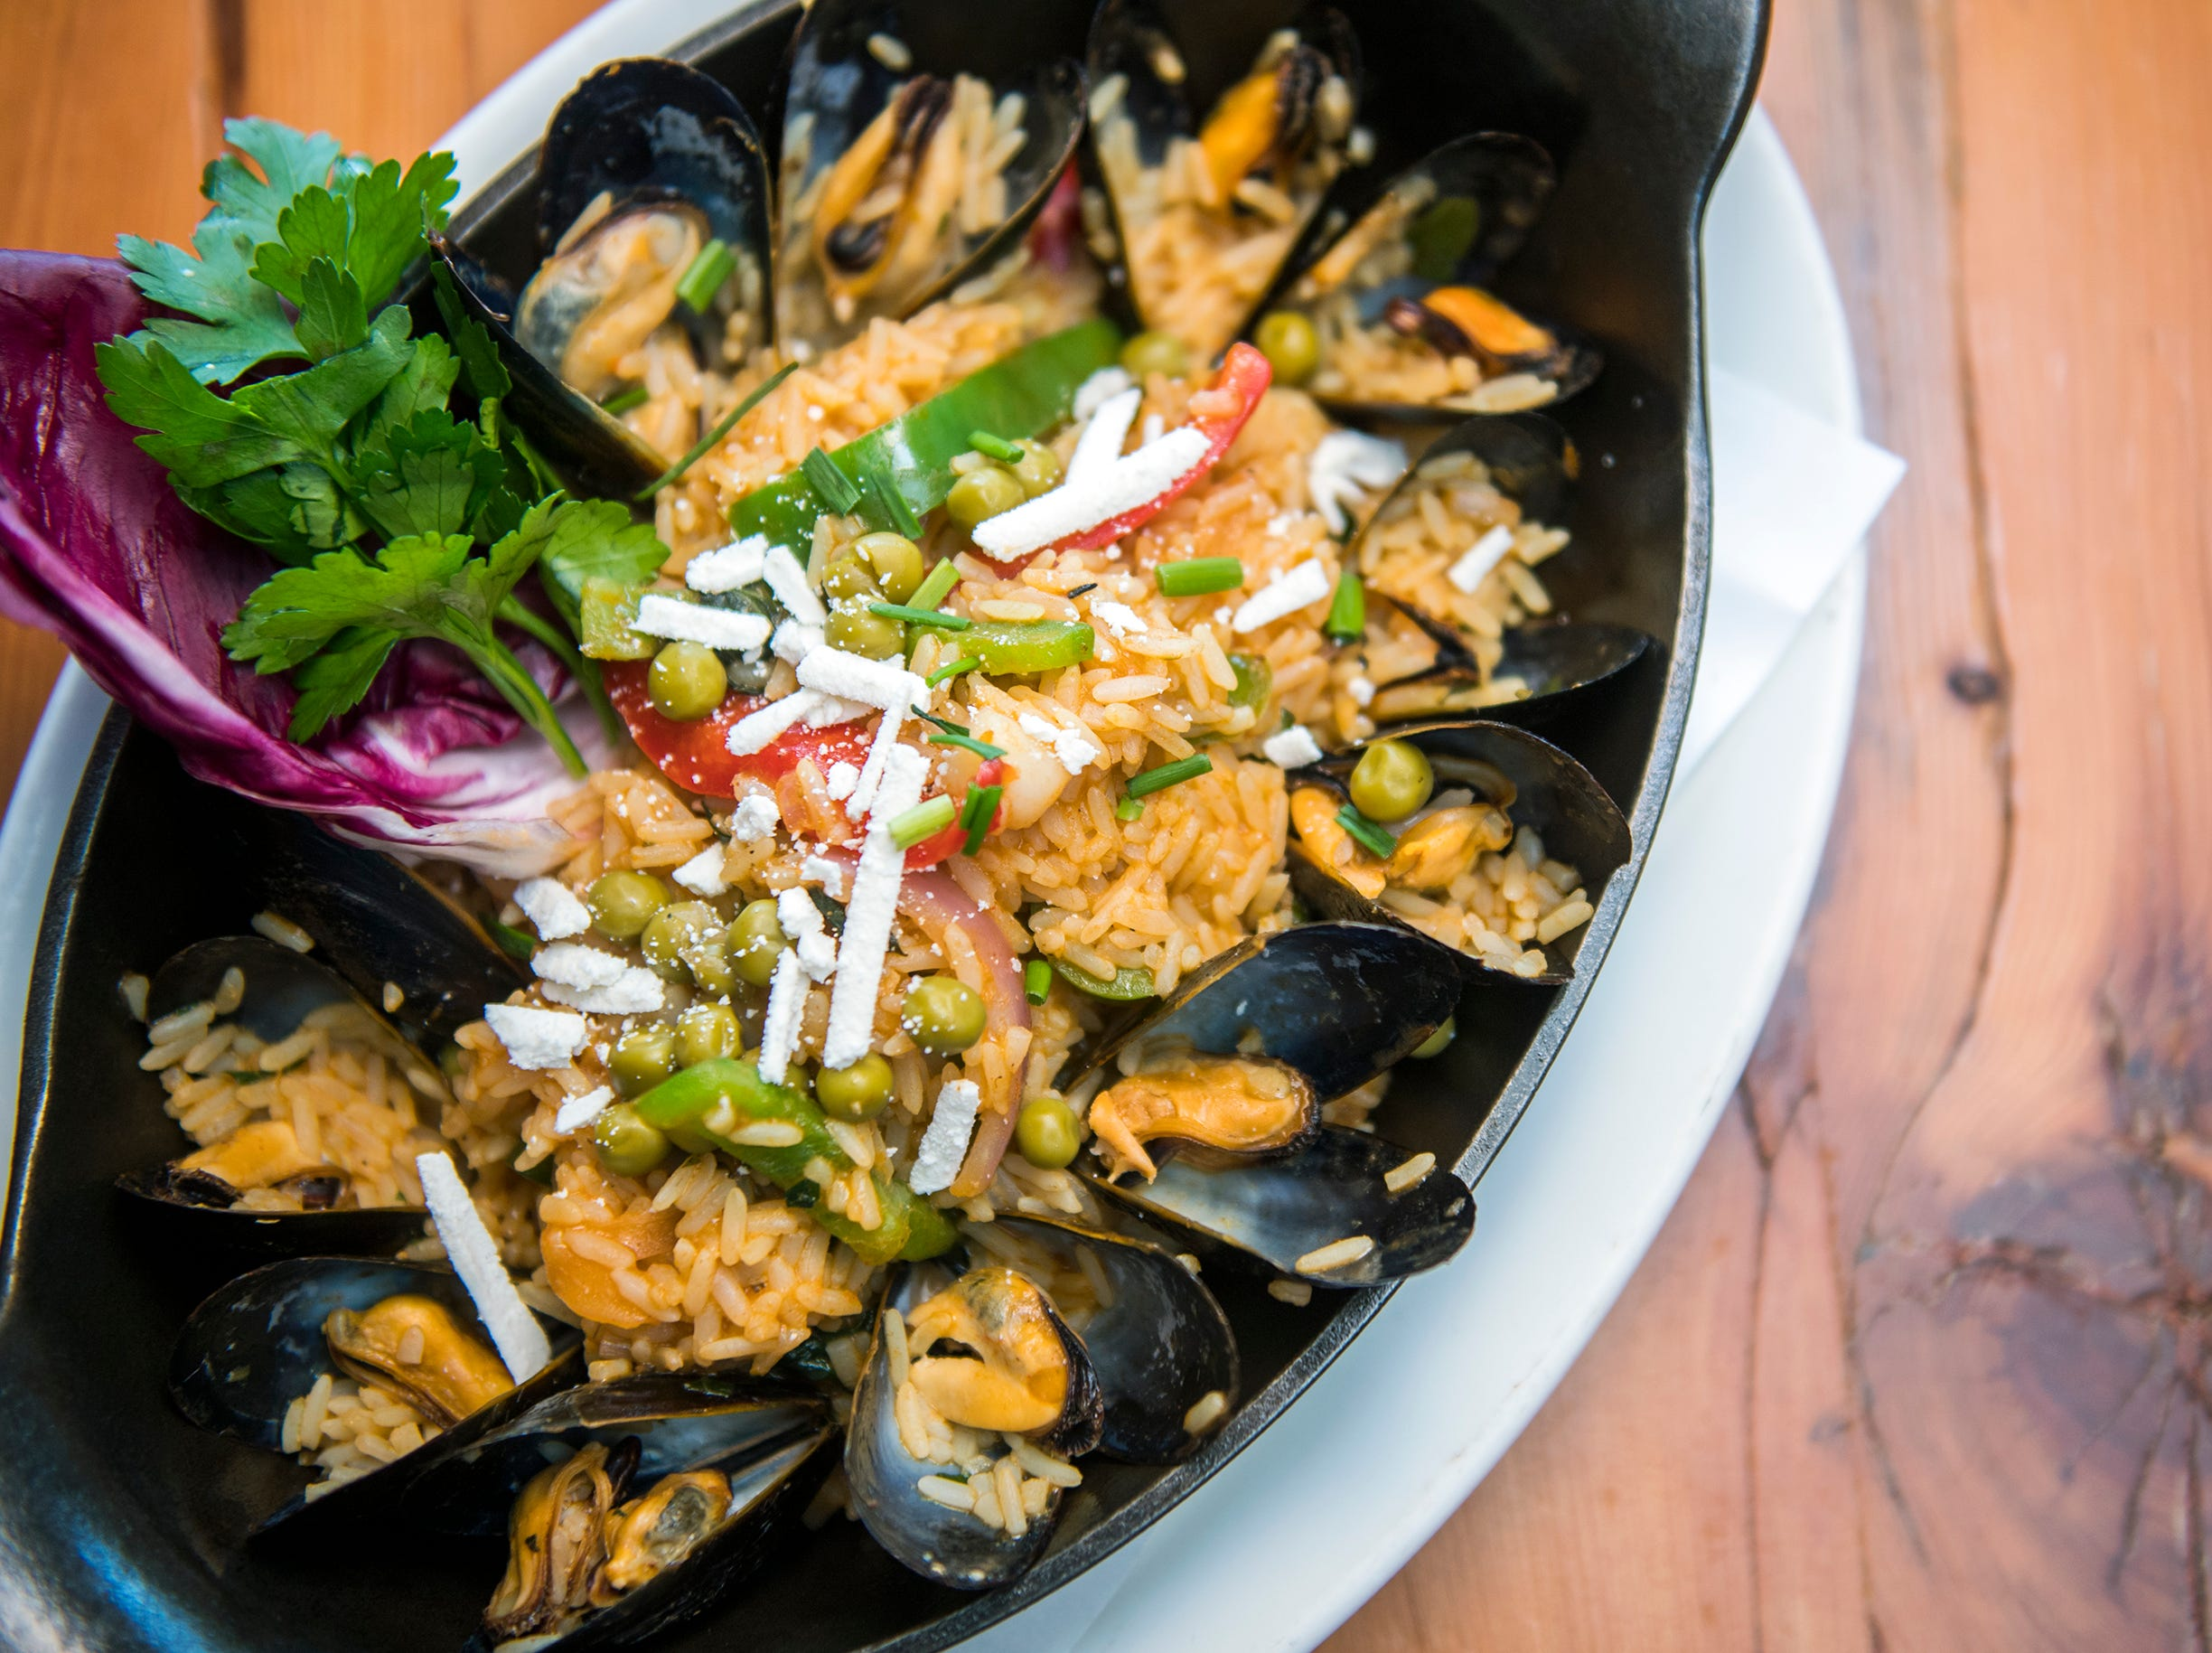 Seafood paella from Terra Nova in Sewell will be on the SJ Hot Chefs Restaurant Week menu at the restaurant.